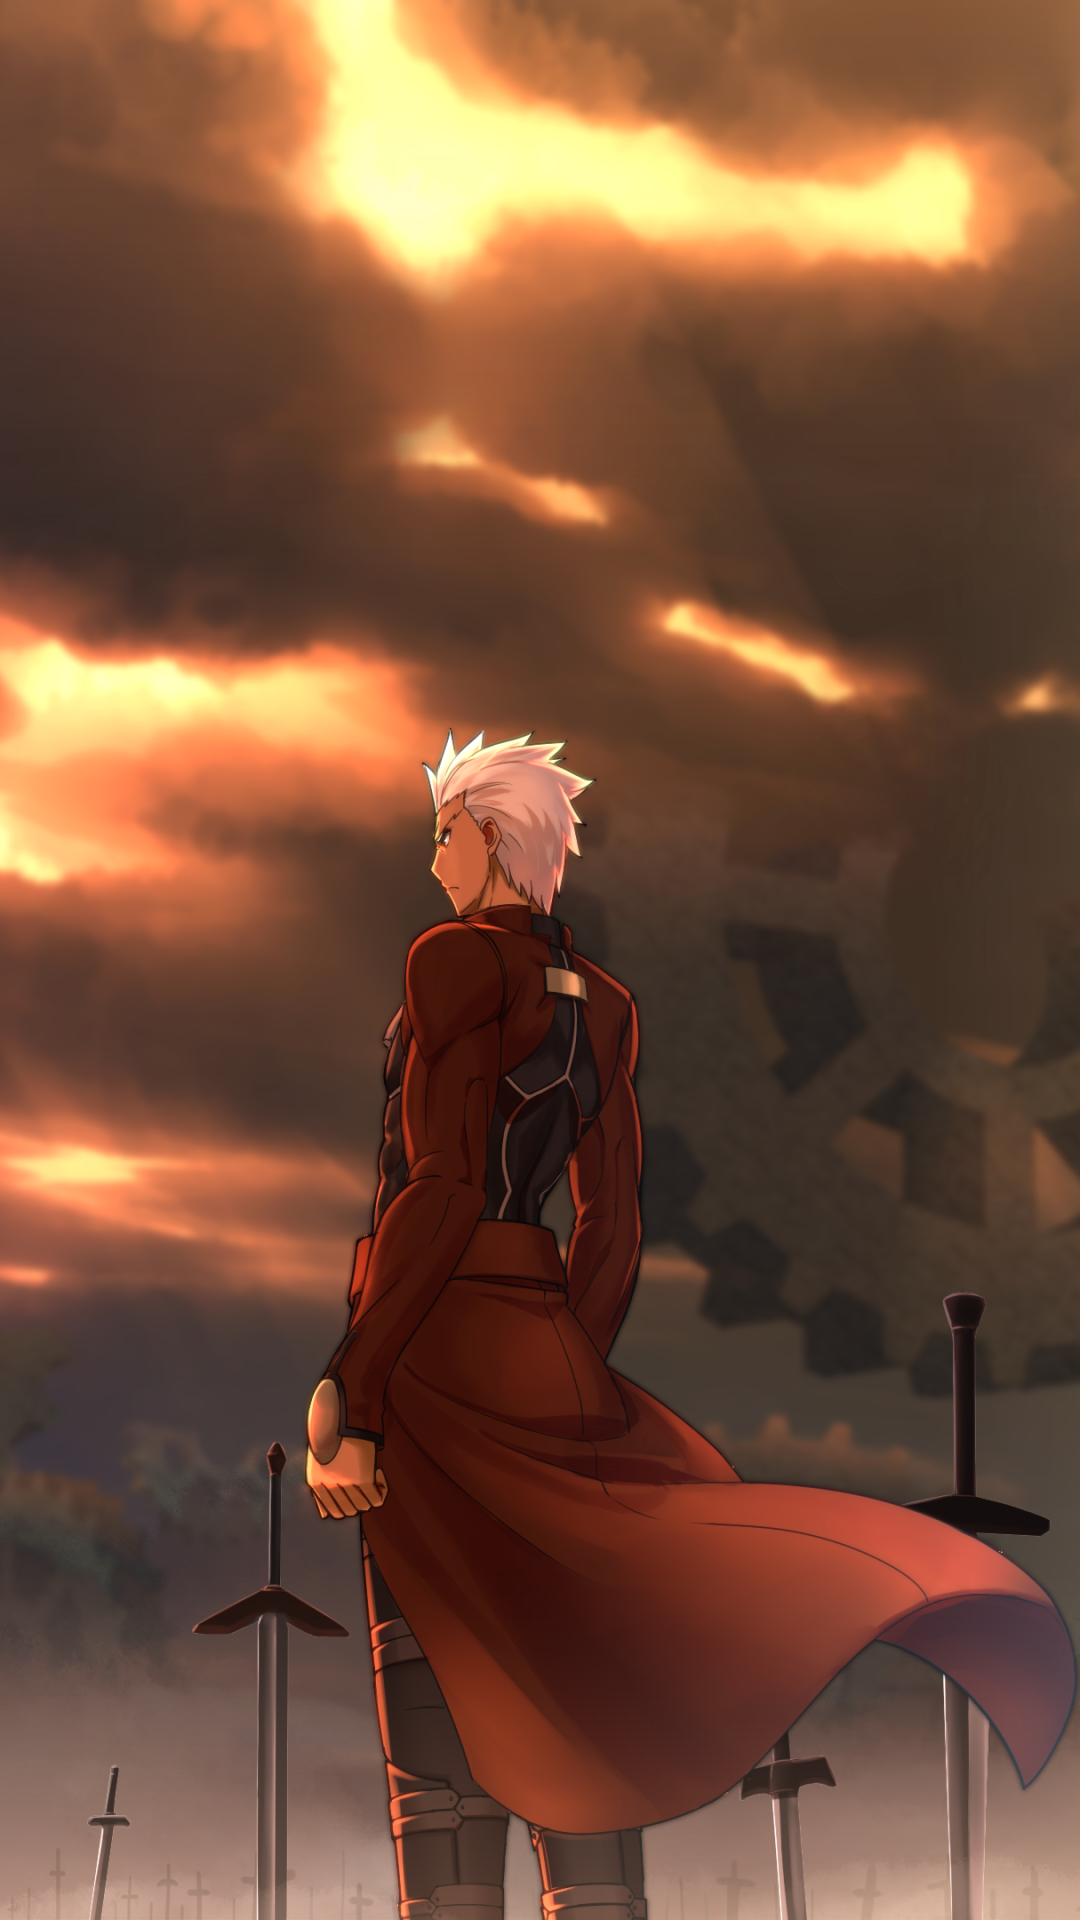 Anime fate stay night unlimited blade works 1080x1920 wallpaper id 681257 mobile abyss - Fate stay night wallpaper ...